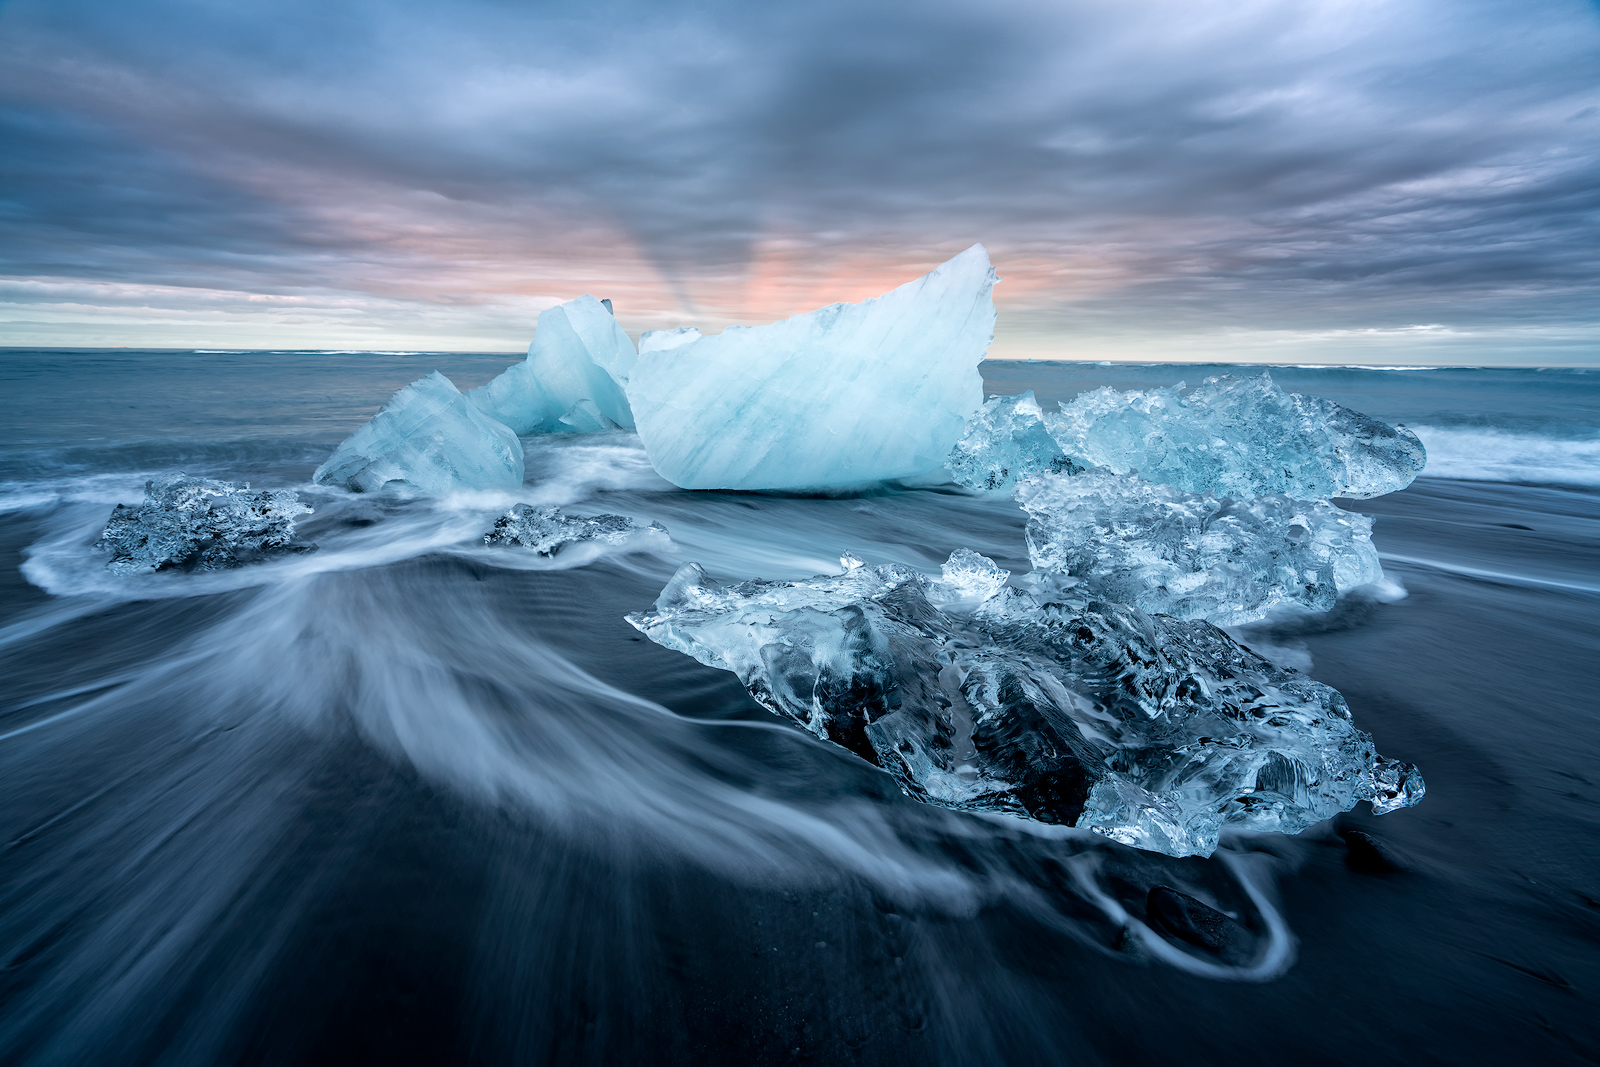 Iceland, Jokulsarlon, Ice Beach, Iceberg, Black Sand, Waves, Motion, Water Motion, Sunset, Cloudy, Bernard Chen, Timescapes, photo